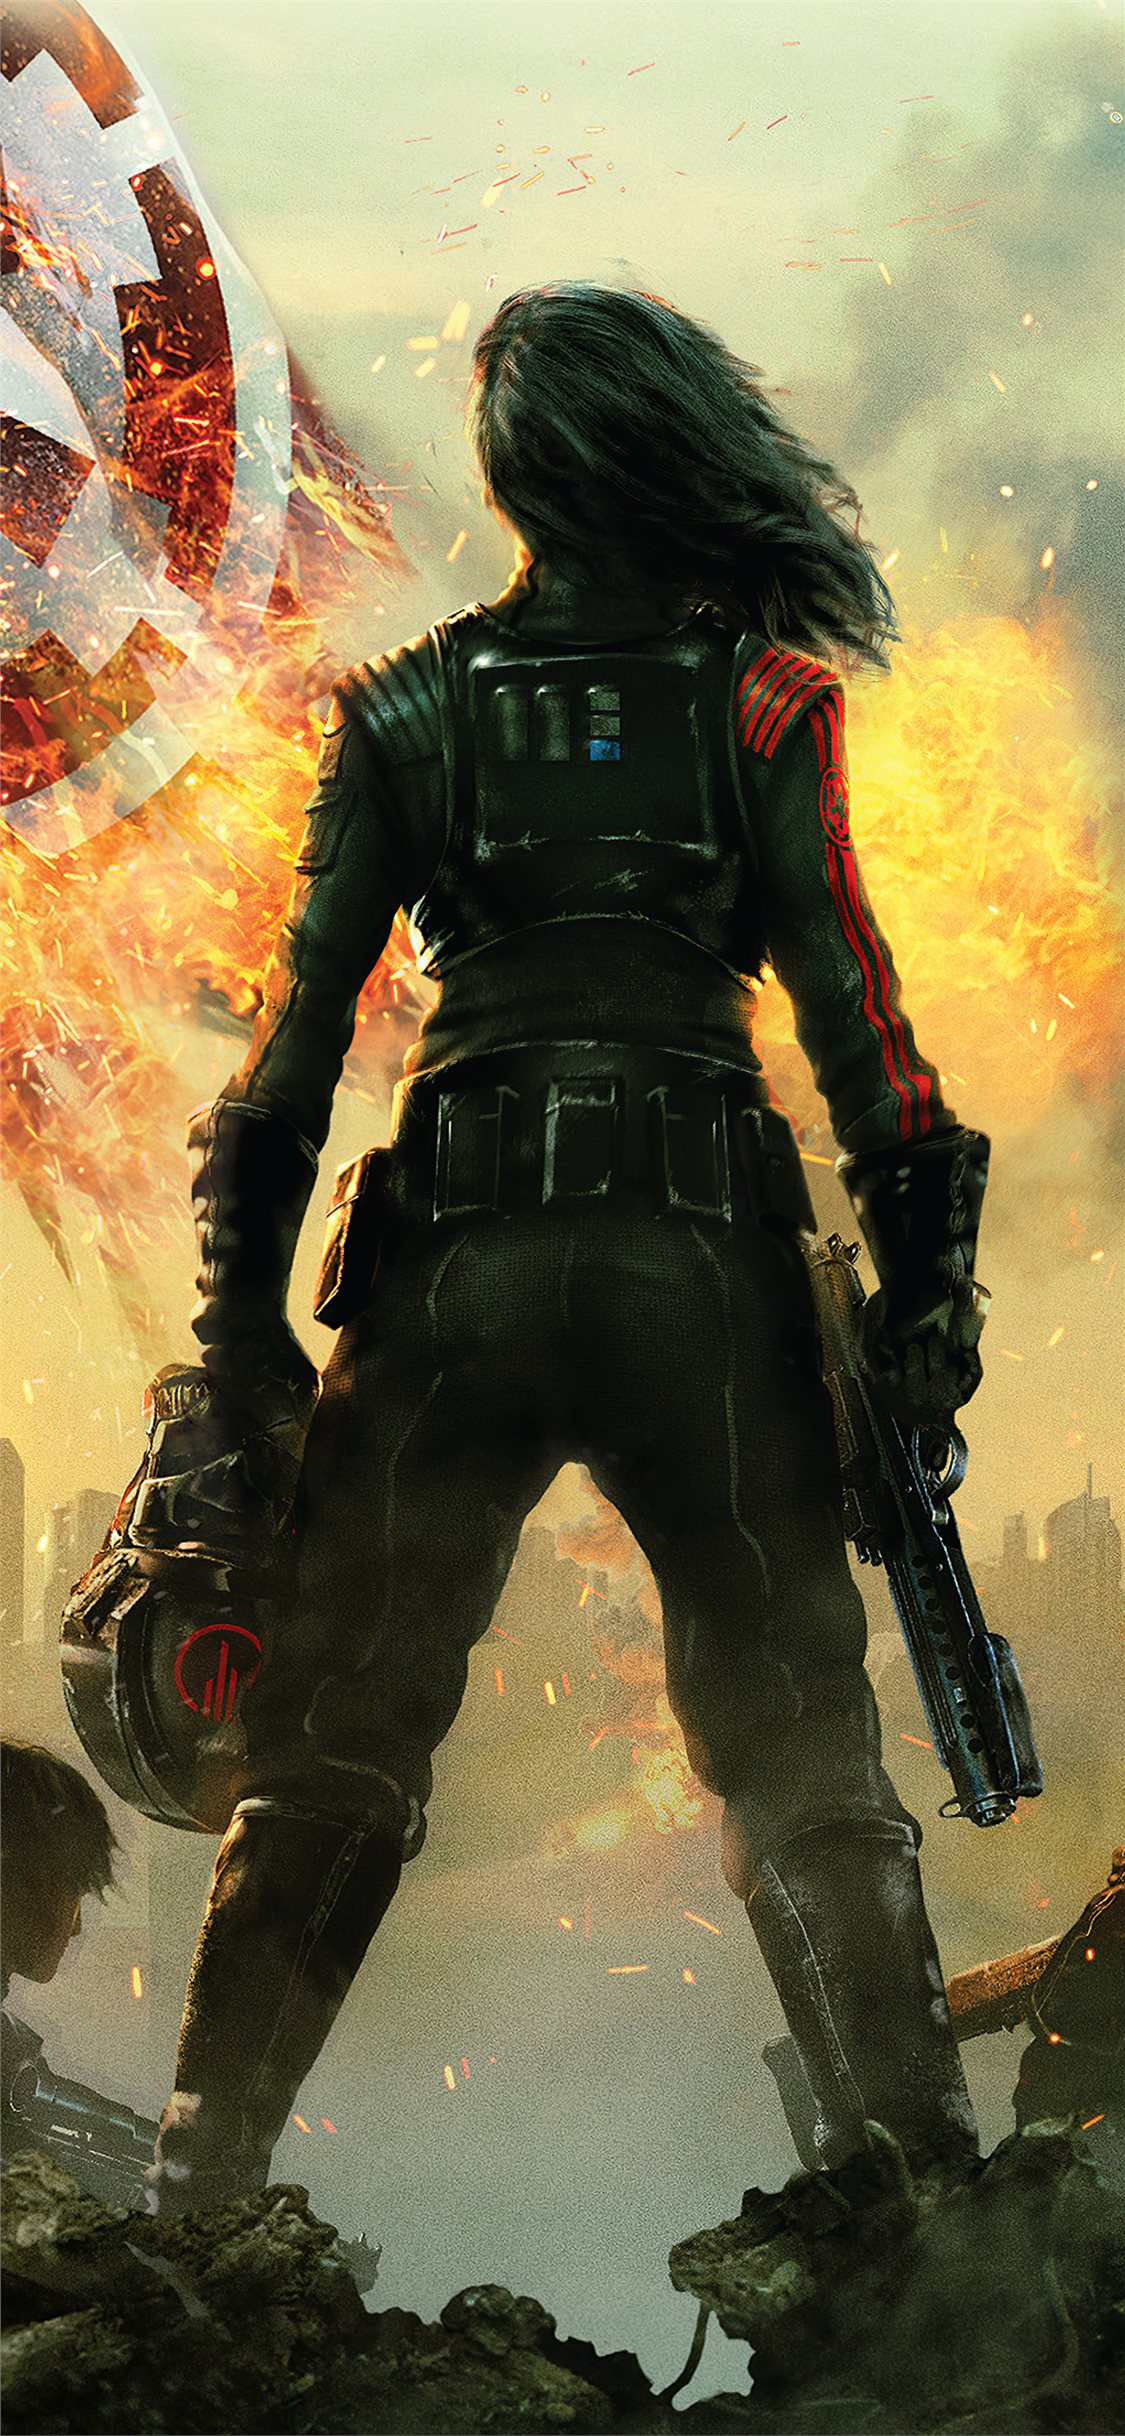 star wars battlefront ii inferno squad 4k iphone x wallpaper ilikewallpaper com